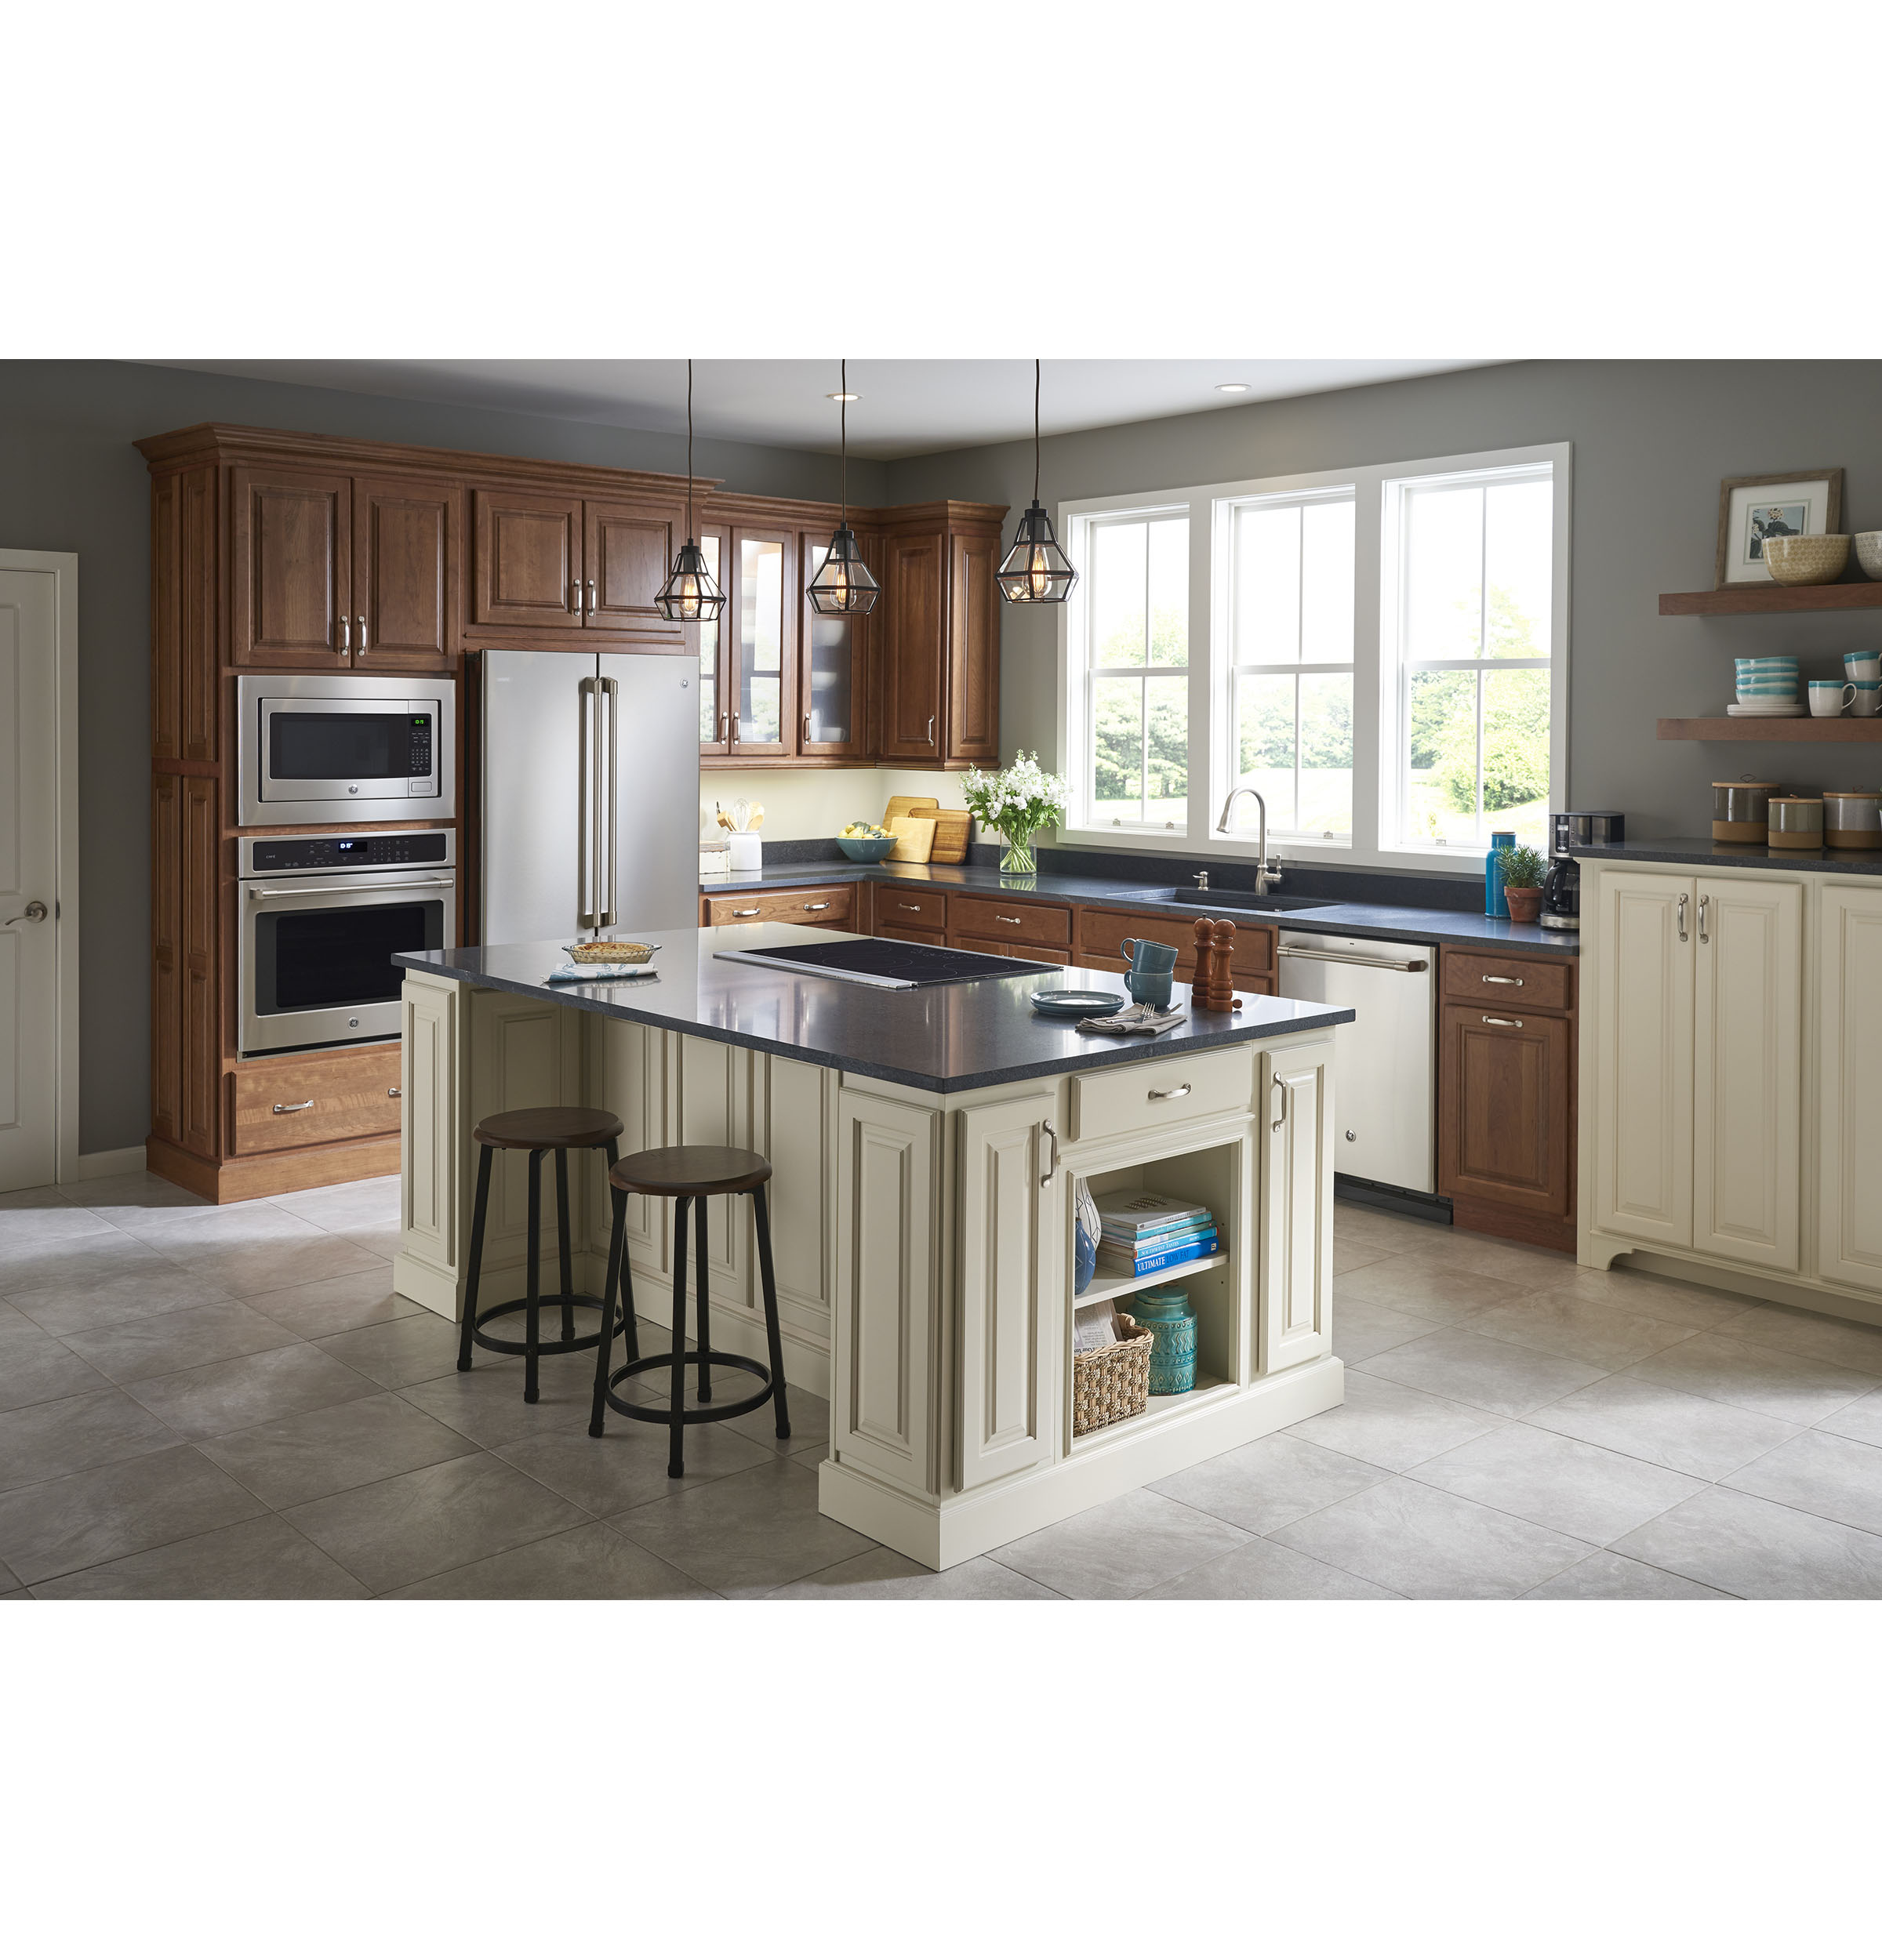 GE Café™ Series ENERGY STAR® 23.1 Cu. Ft. Counter Depth French